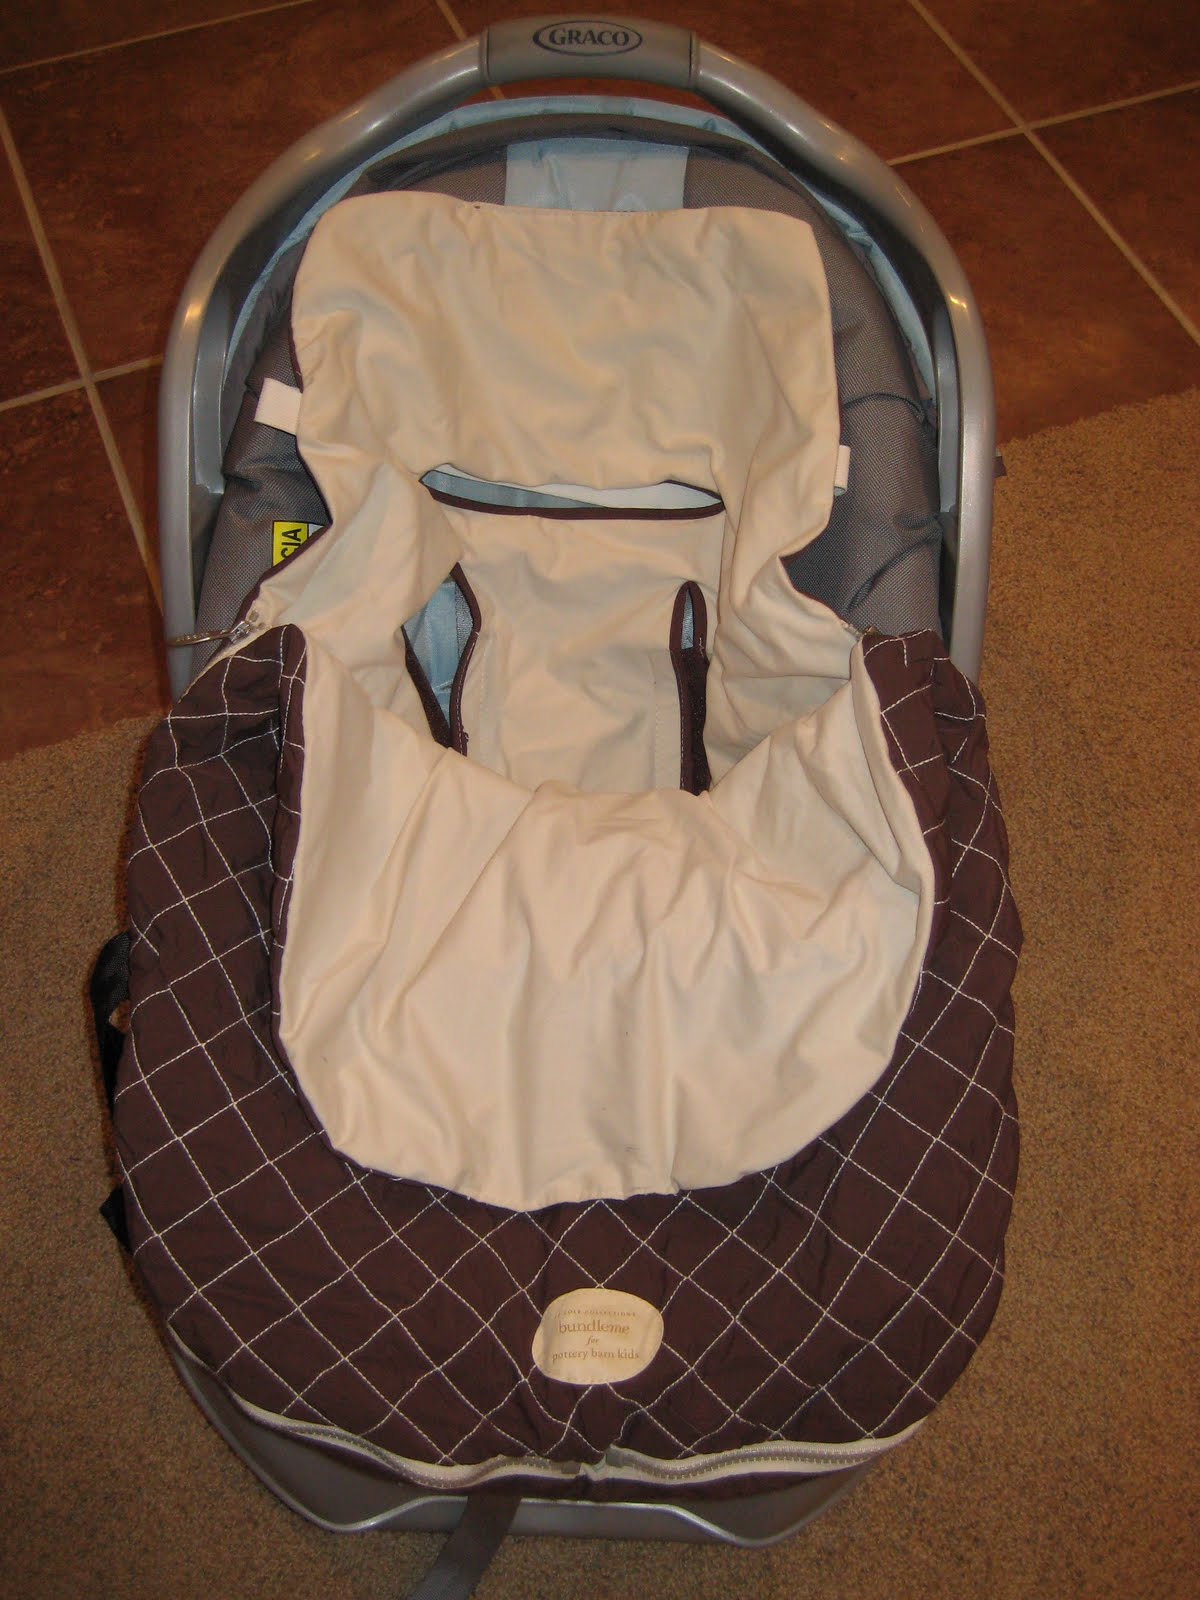 Baby Boppy Chair Recall Pillow Target Year Of Gear